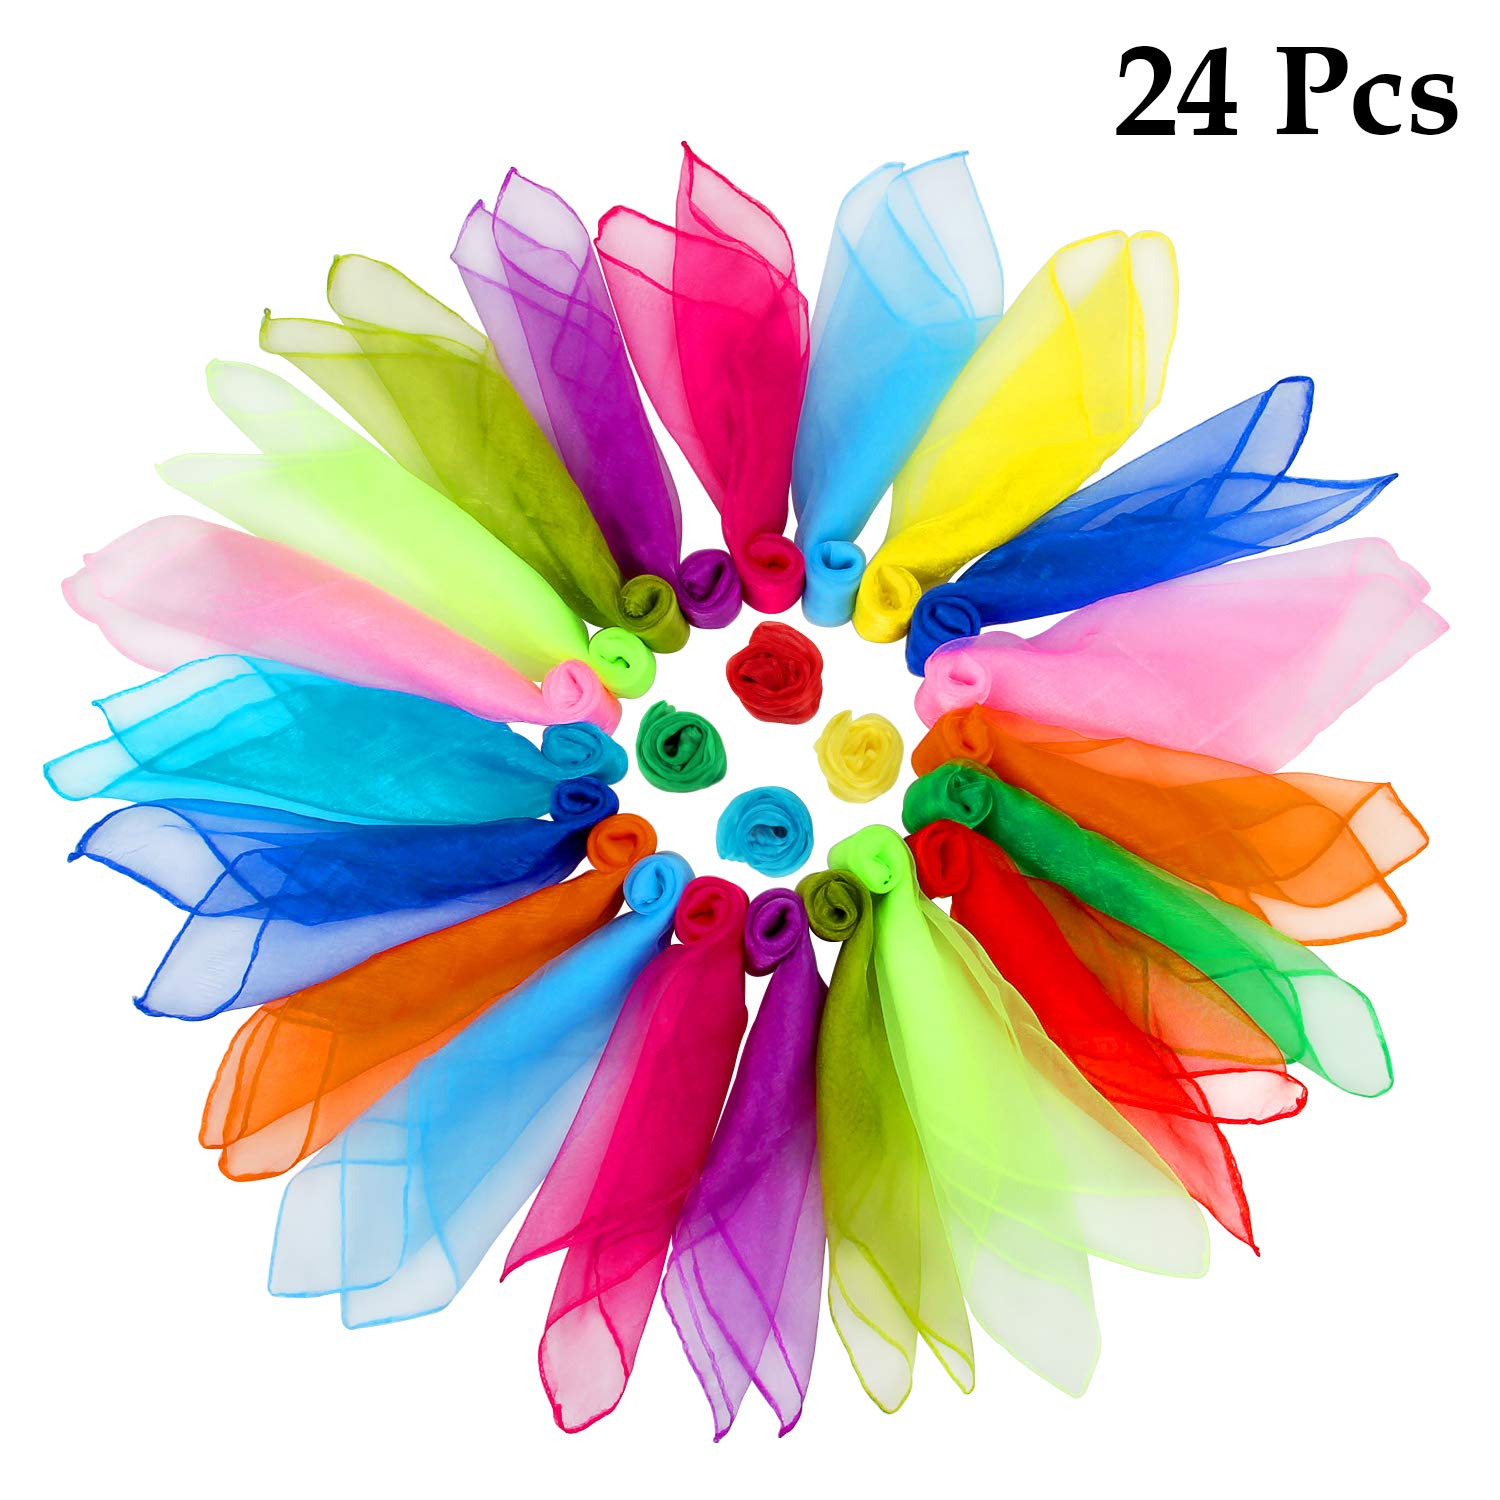 24 Pcs Square Dance Scarves, Juggling Scarf Props Magic Trick Silk Scarves Music Movement Scarf 12 Colors 24 by 24 Inches